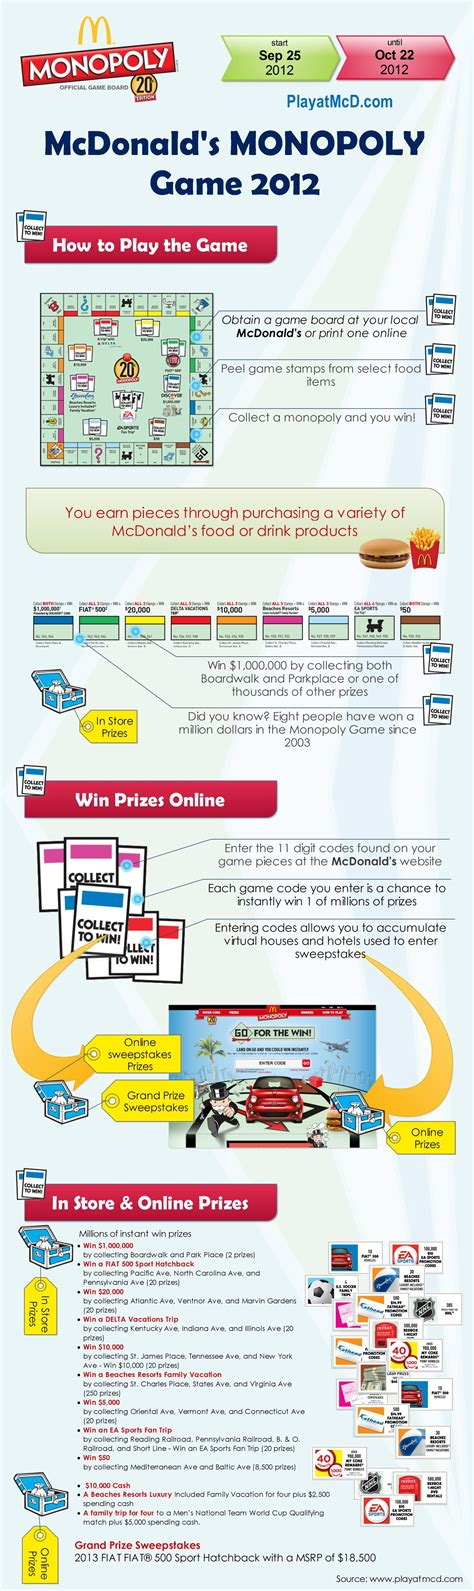 Shaws Monopoly Sweepstakes - mcdonalds monopoly rules 2015